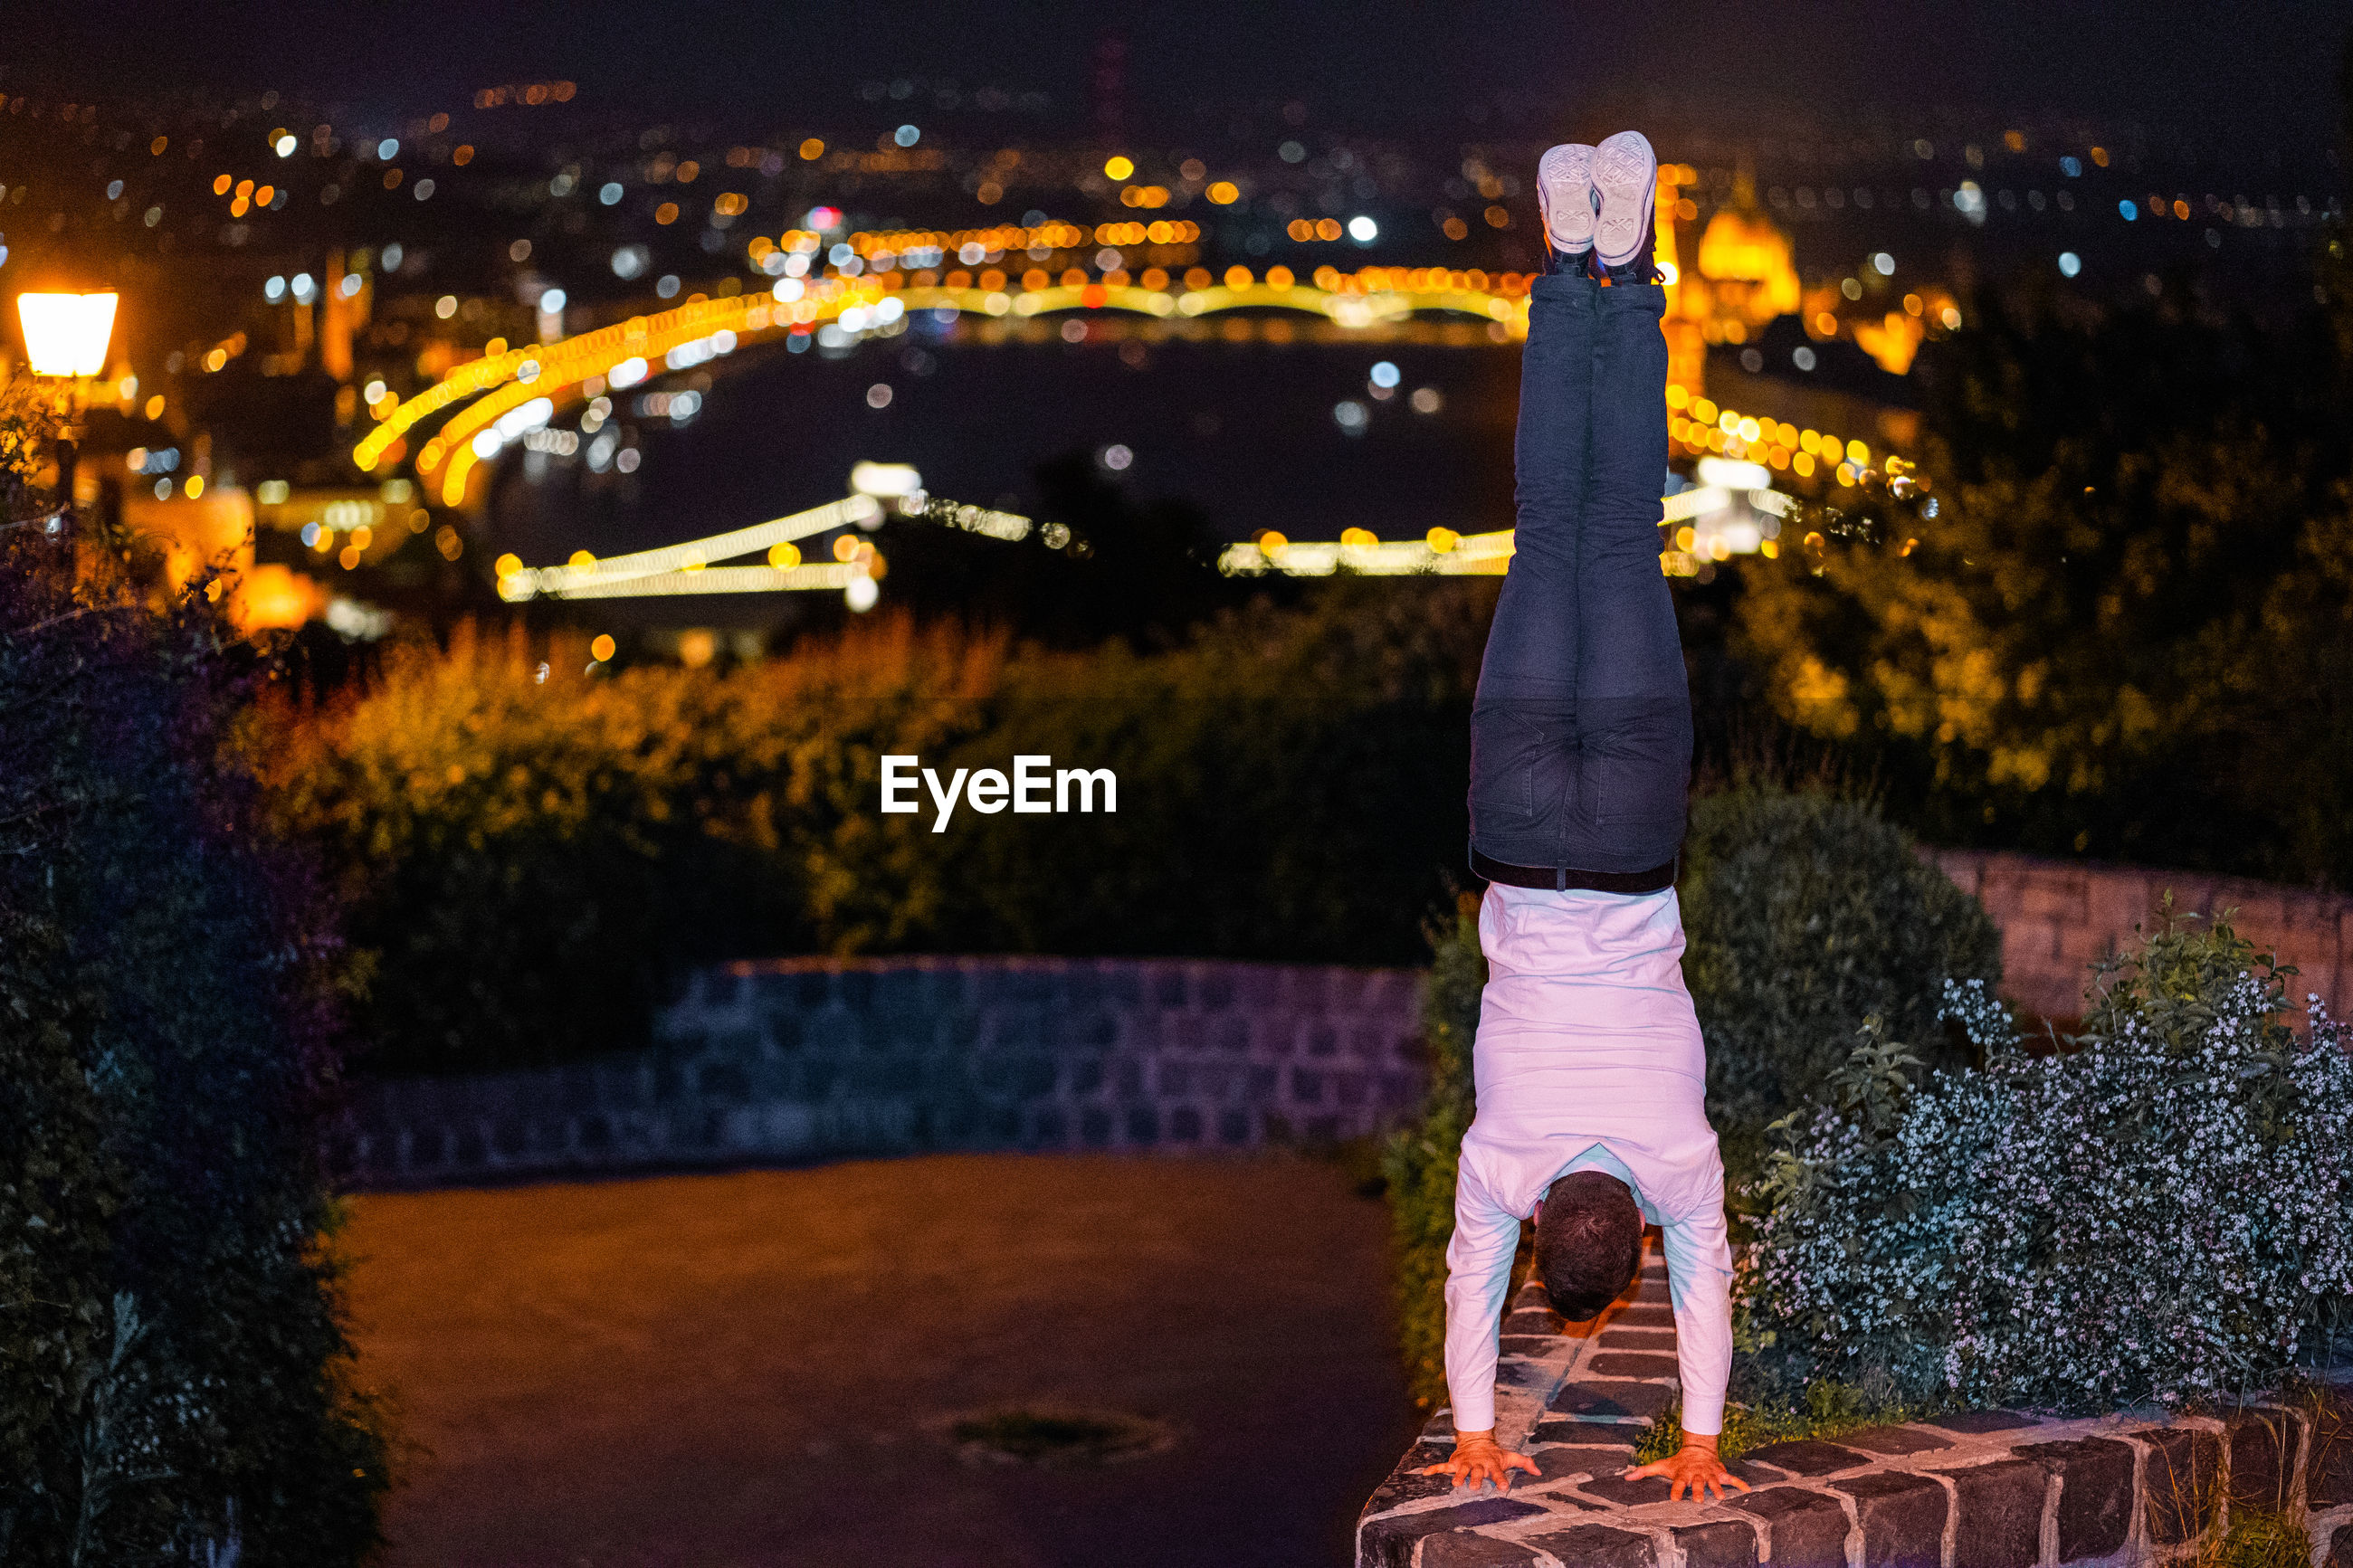 Rear view of man doing handstand on retaining wall against illuminated city at night